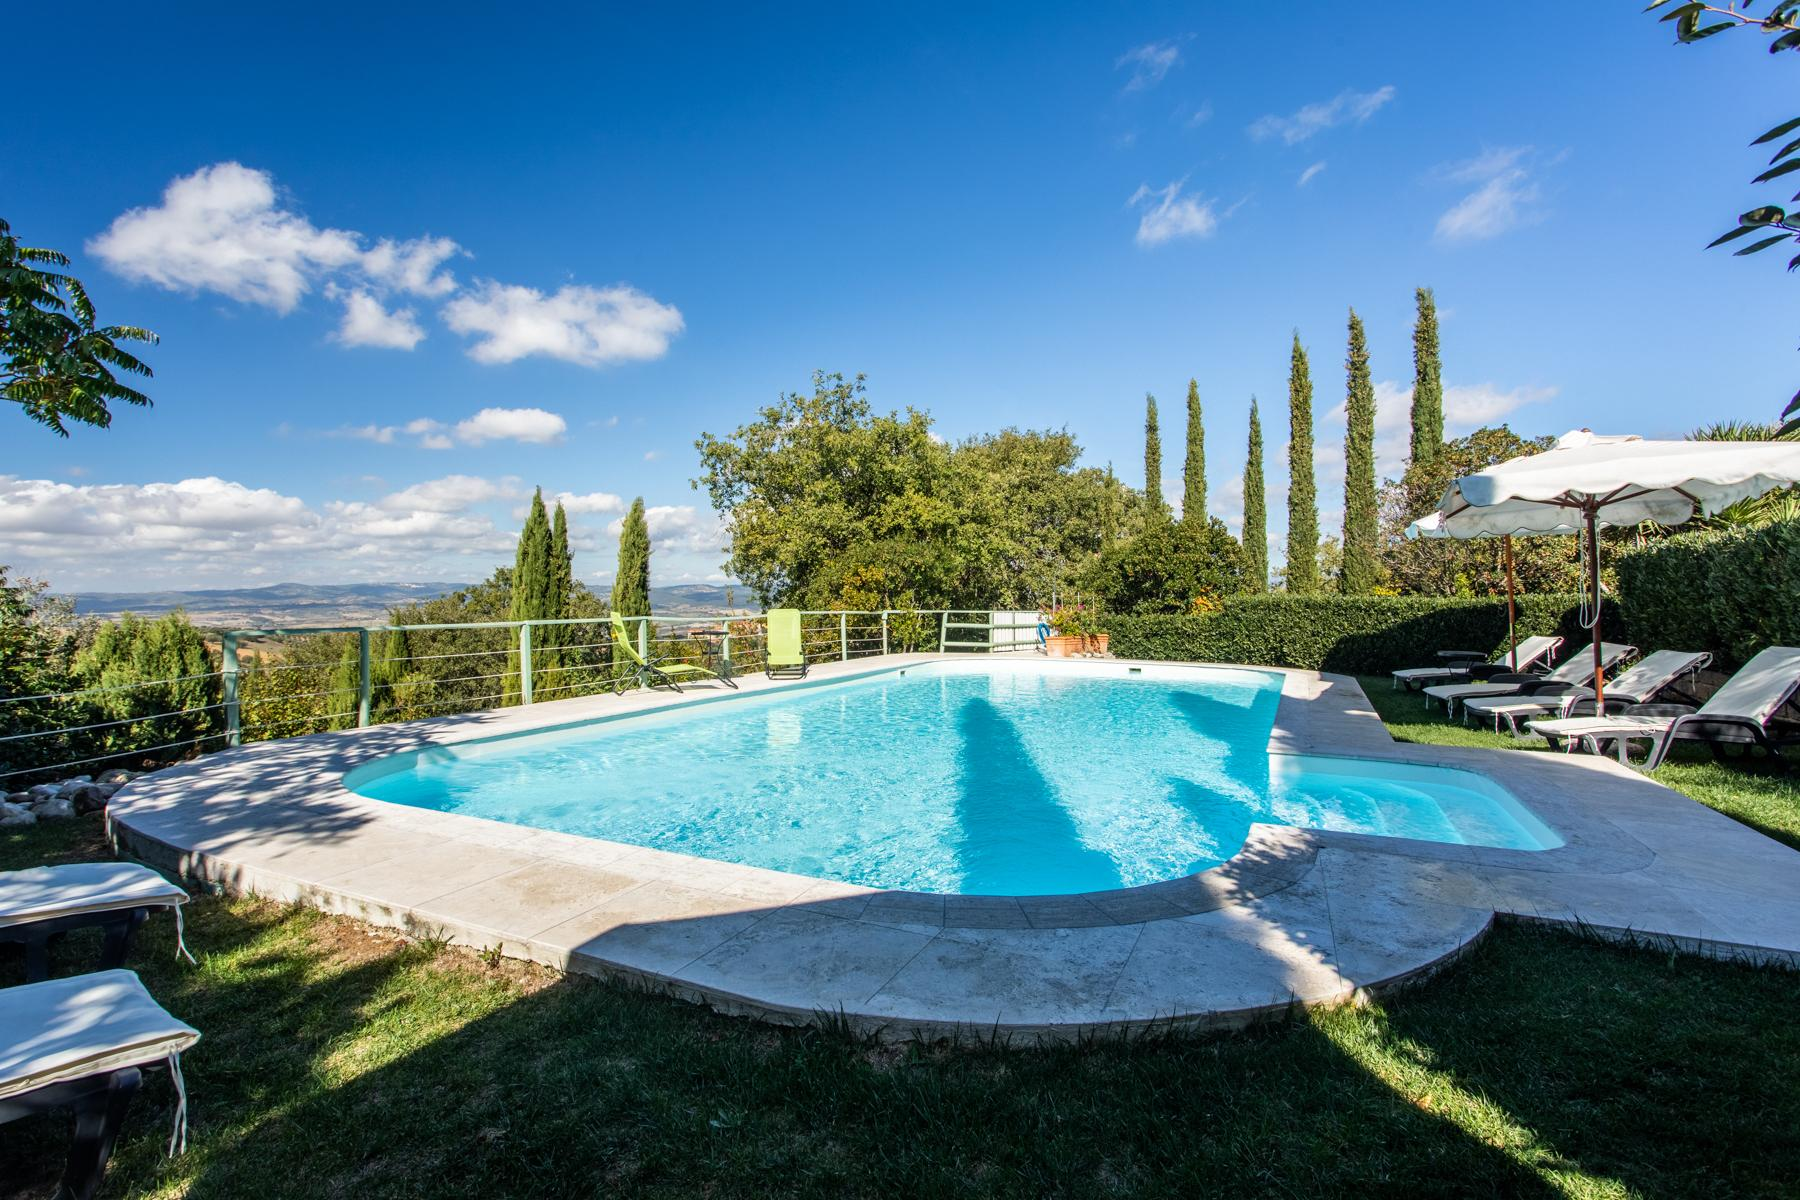 Charming farmhouse with swimming pool in the Maremma countryside - 8